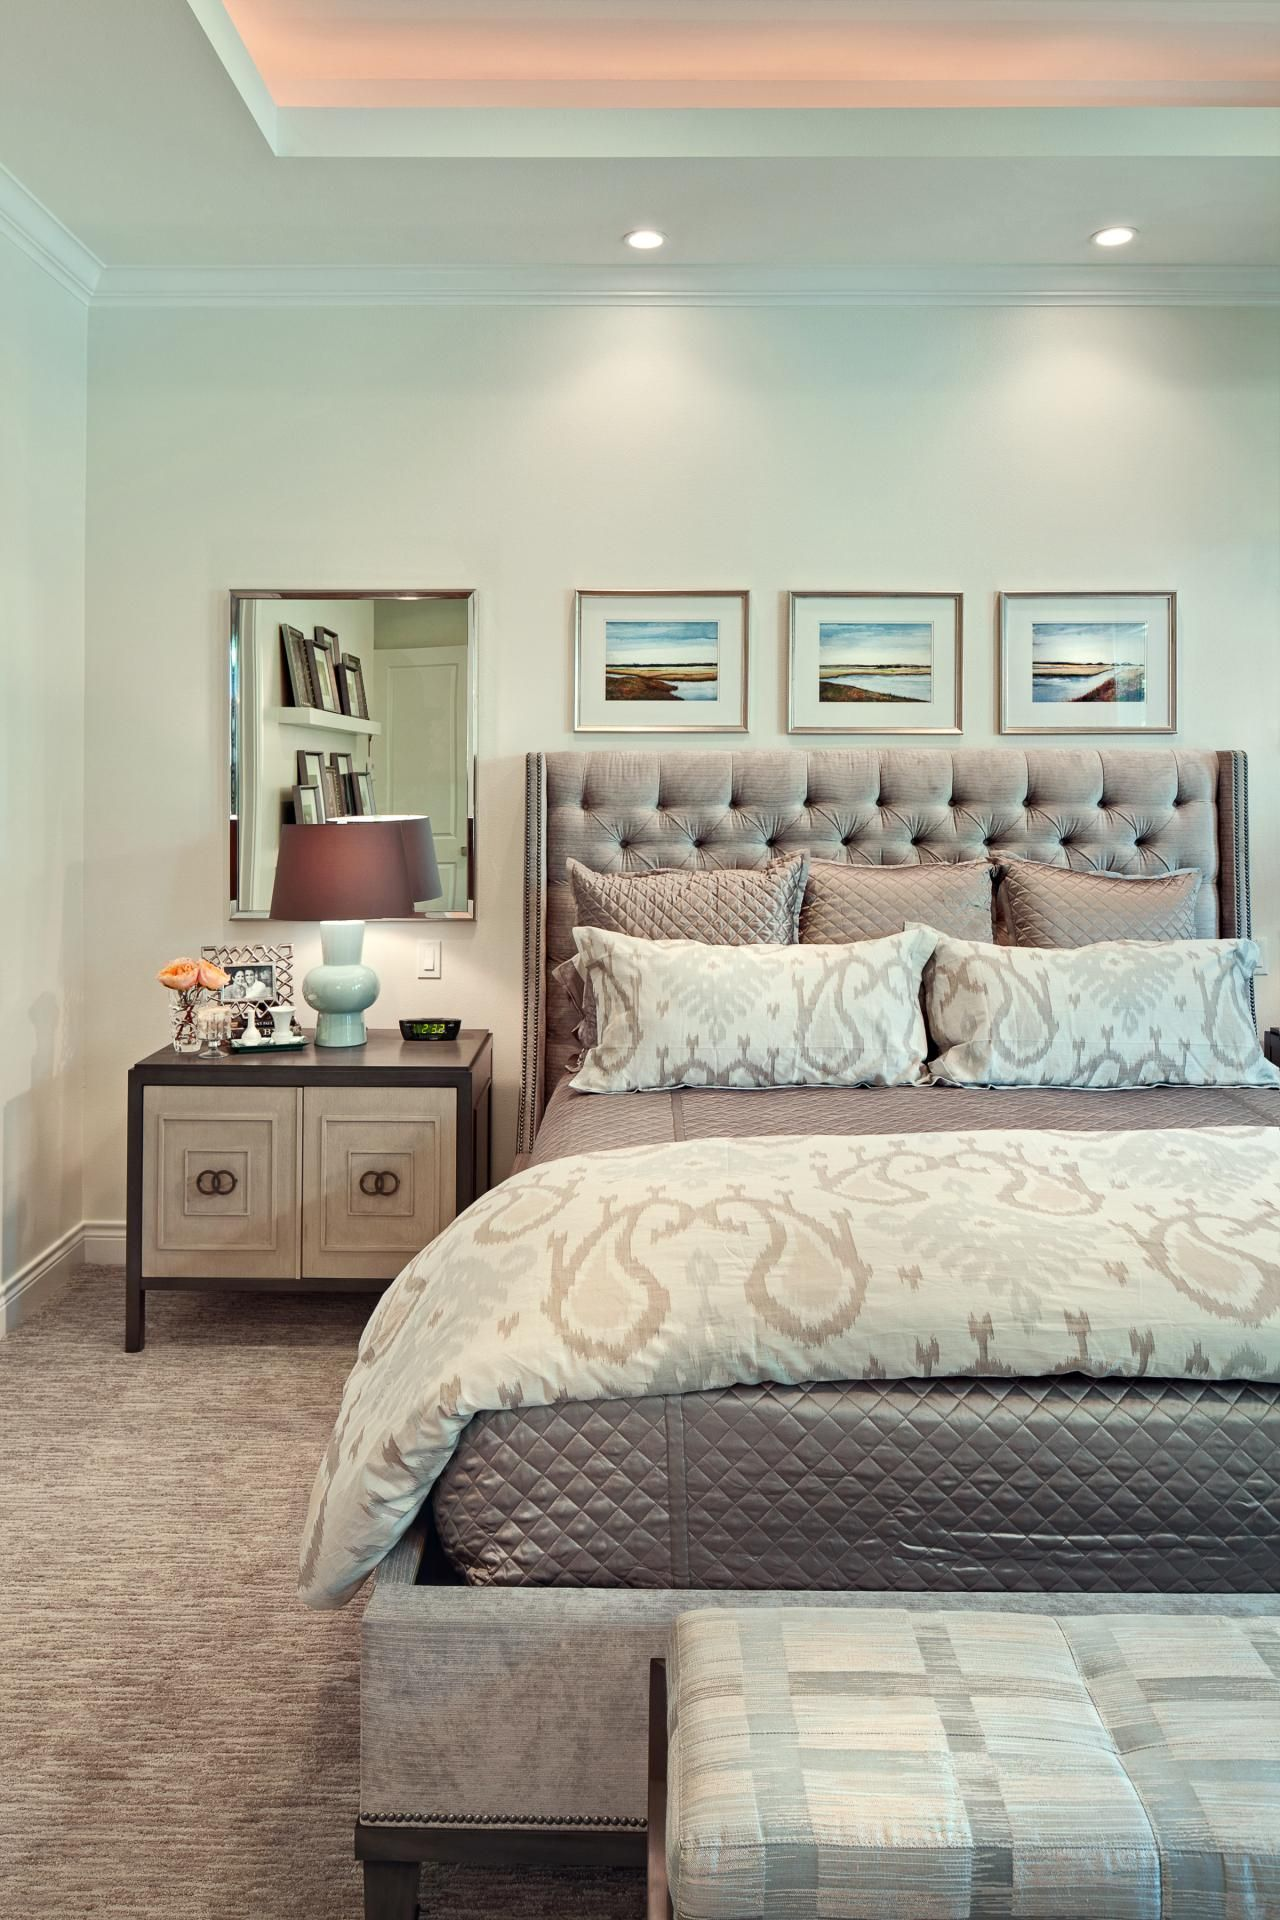 Master Bedroom Tray Ceiling And Framed Art Above Bed